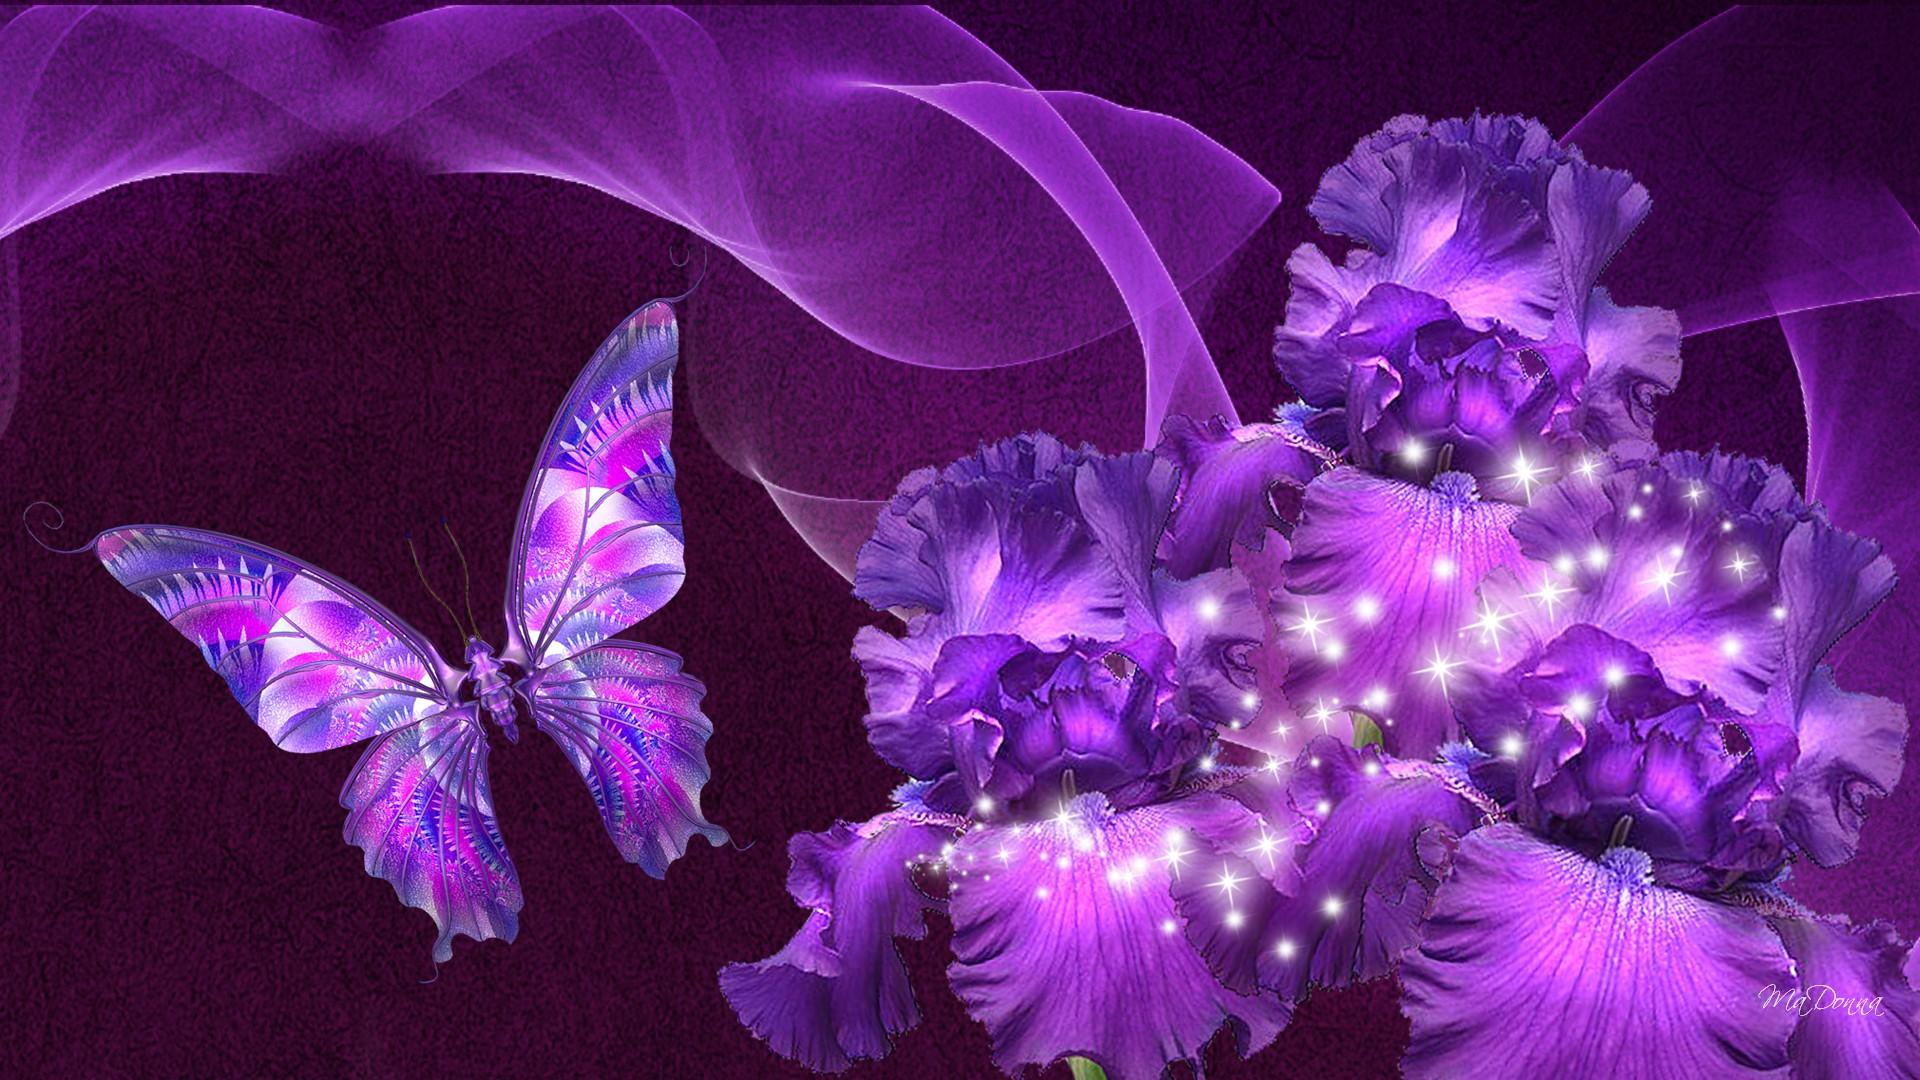 Dragon tailed butterflies